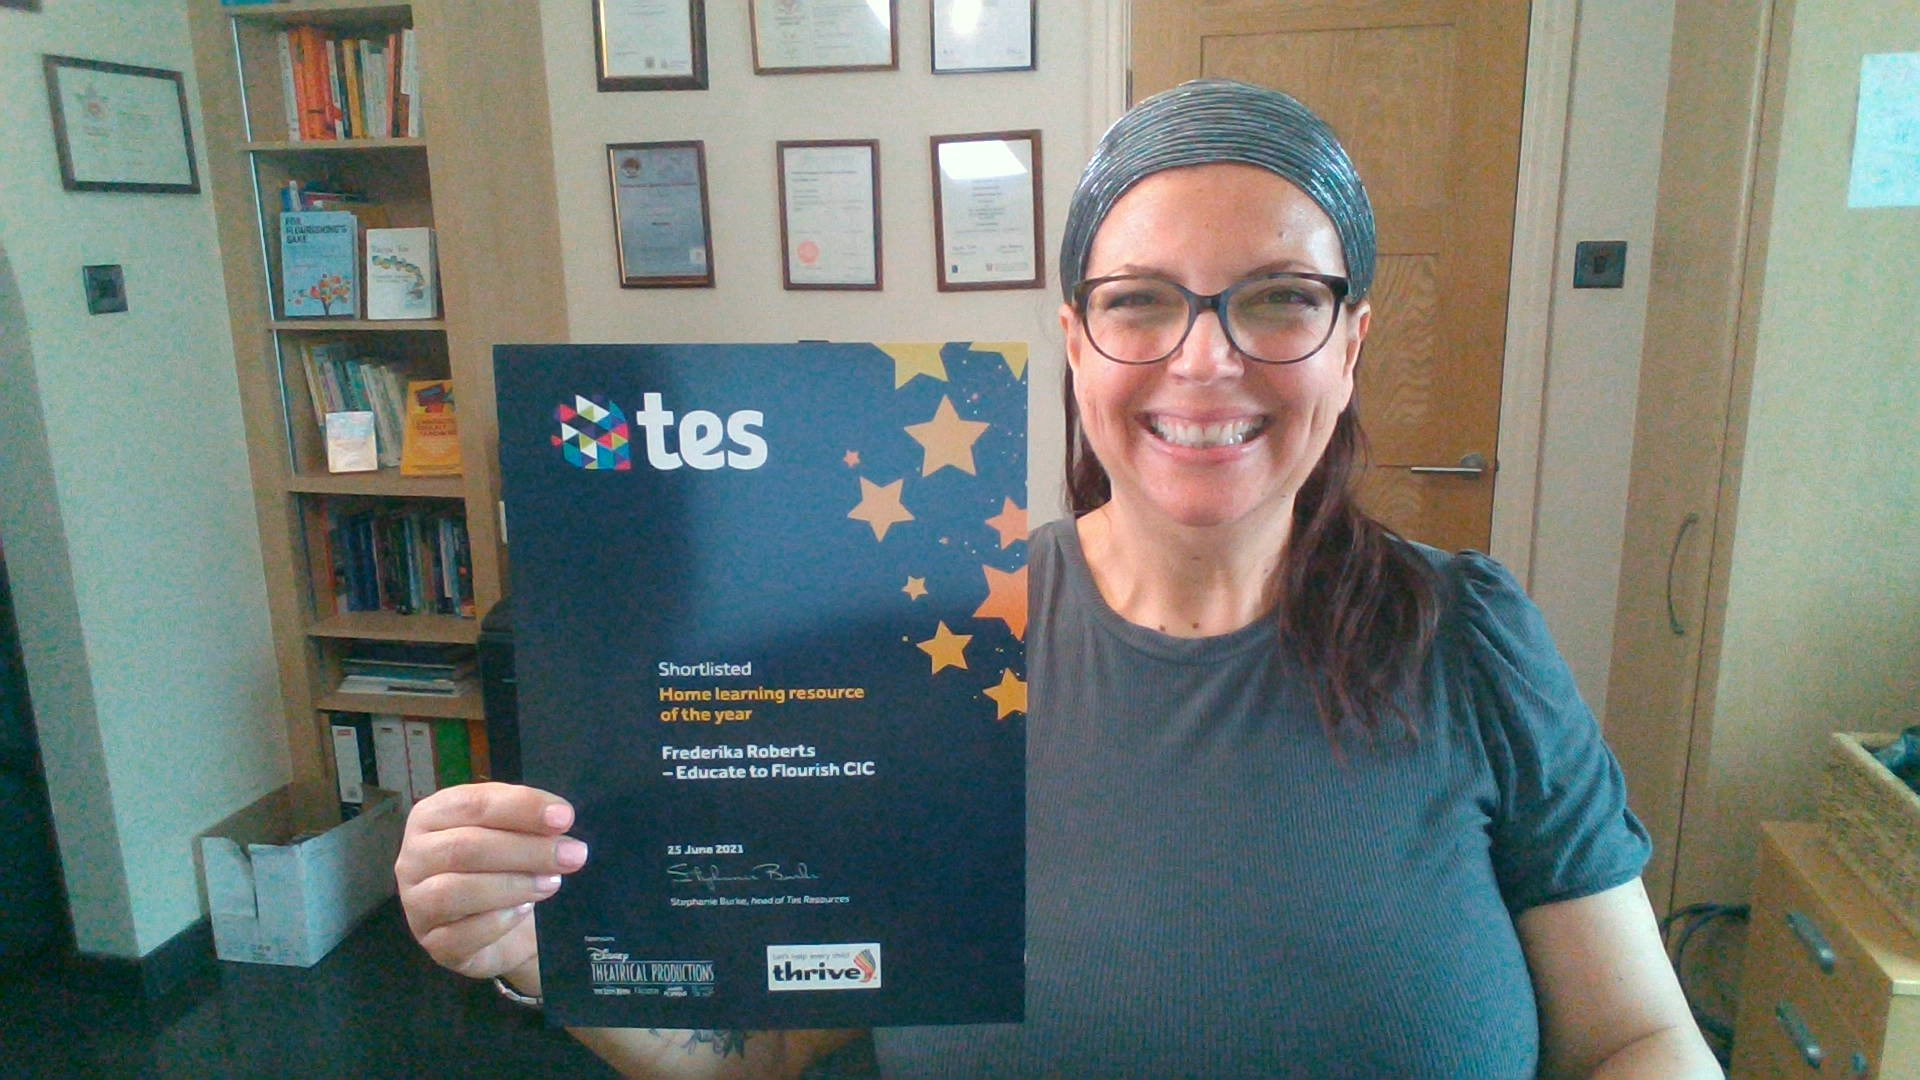 The image shows Educate to Flourish's Founder, Frederika Roberts, in her home office.  She is smiling broadly and holding a certificate stating the resource she created was shortlisted for the TES Home Learning Resource of the Year Award 2021.